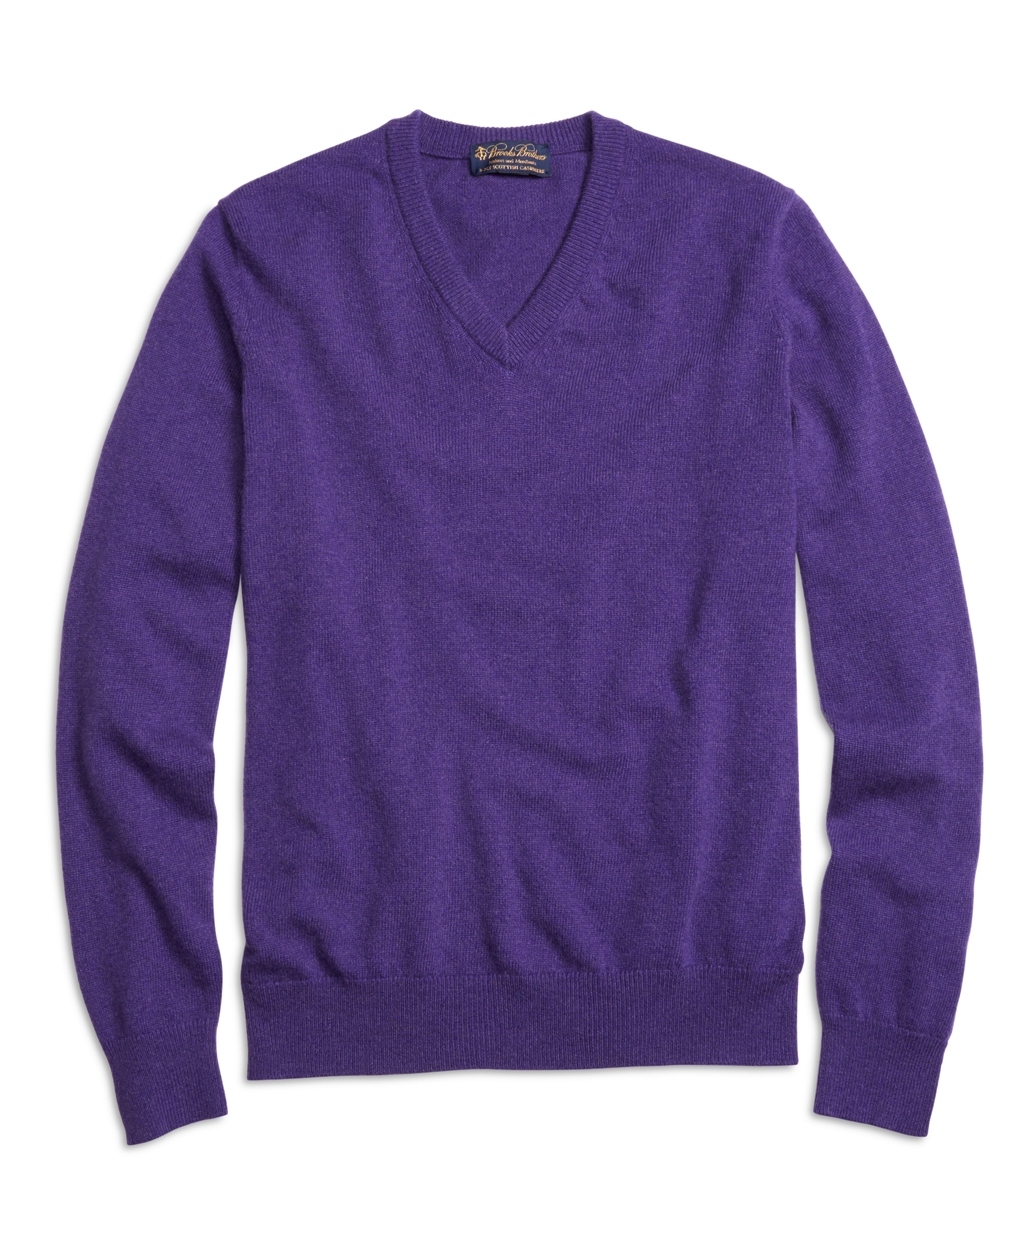 Find Purple men's cardigans at ShopStyle. Shop the latest collection of Purple men's cardigans from the most popular stores - all in one place.